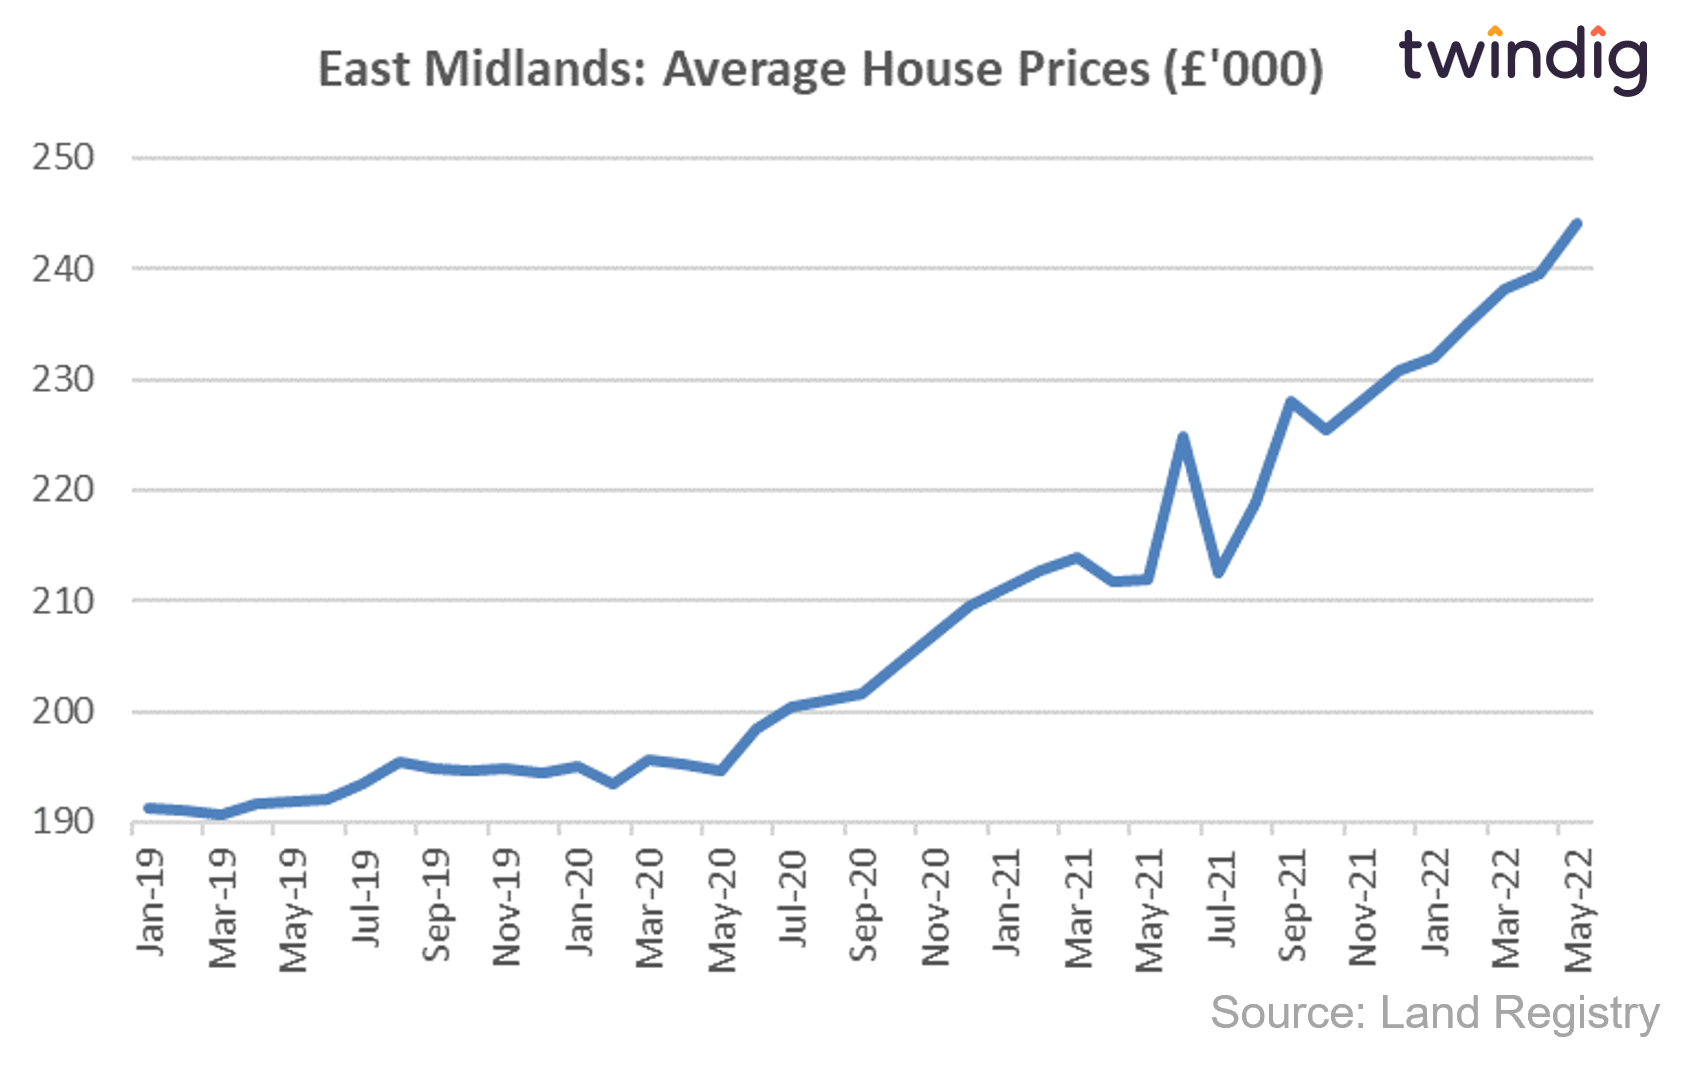 House price graph chart showing average house prices in the East Midlands